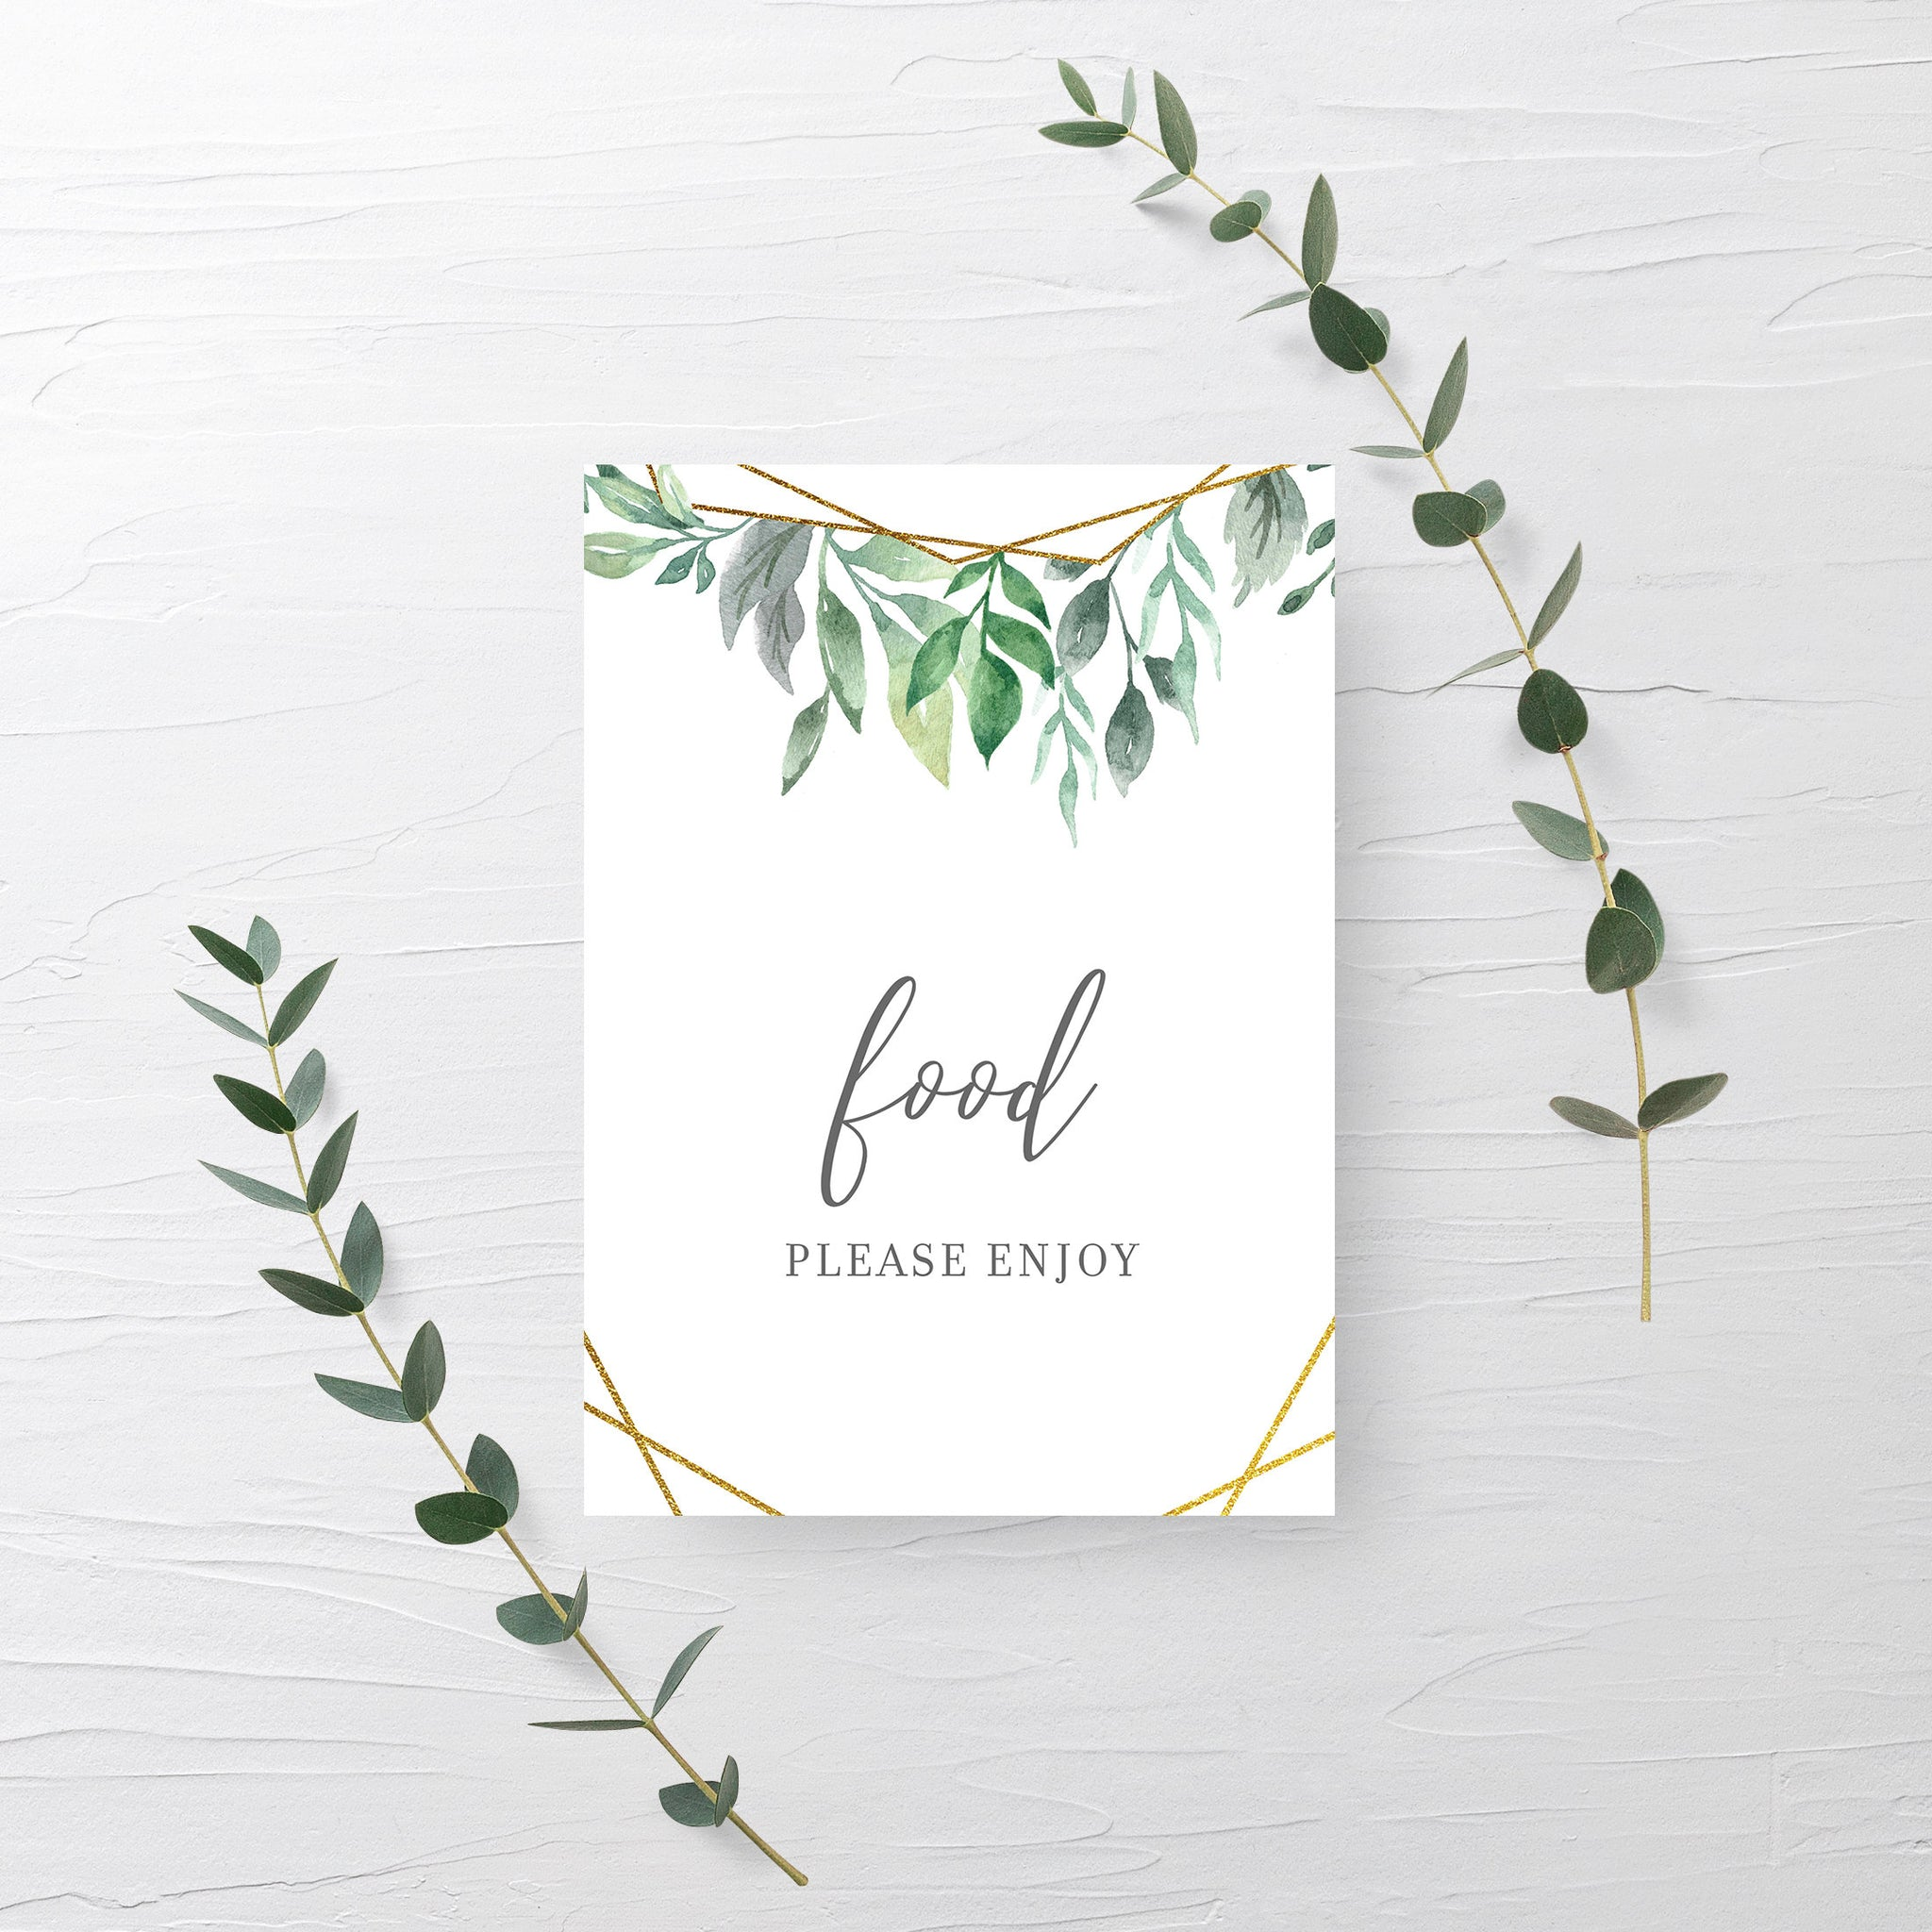 Greenery Bridal Shower Decorations, Printable Food Sign, Gold Geometric Wedding Decor, DIGITAL DOWNLOAD - GFG100 - @PlumPolkaDot